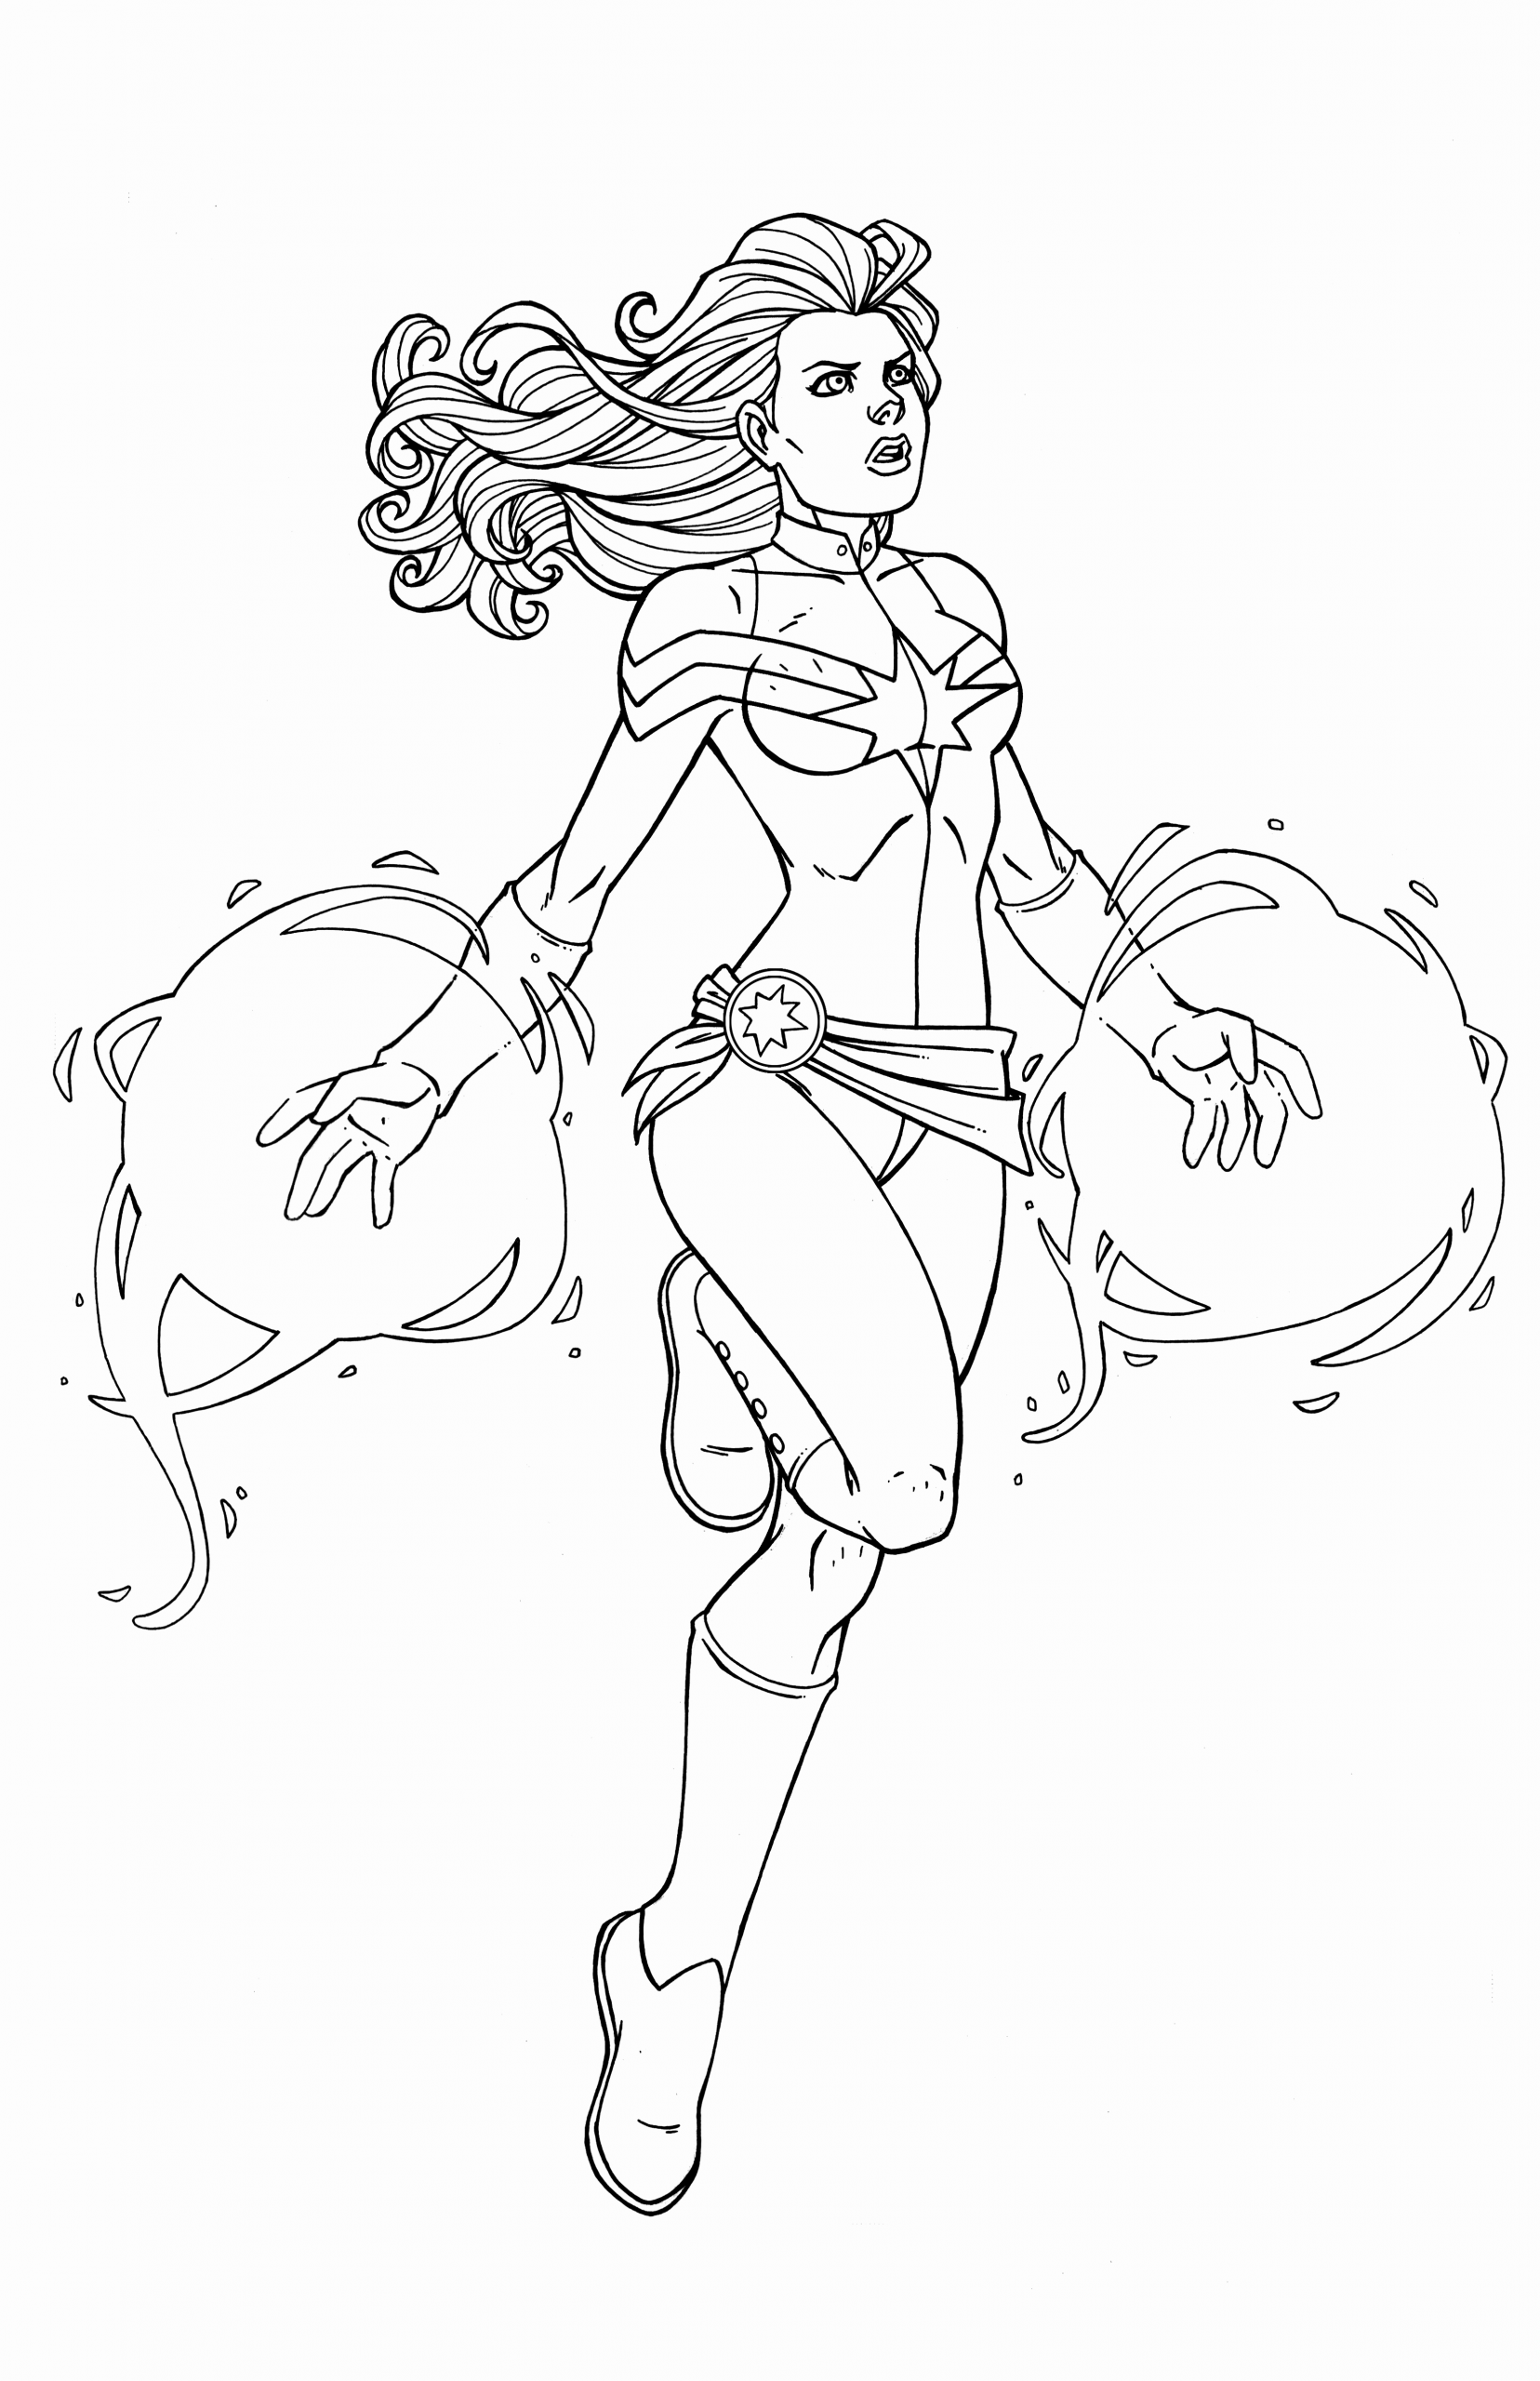 Captain Marvel Coloring Page Fresh Captain Marvel By Jamiefayx On Deviantart In 2020 Marvel Coloring Avengers Coloring Marvel Drawings